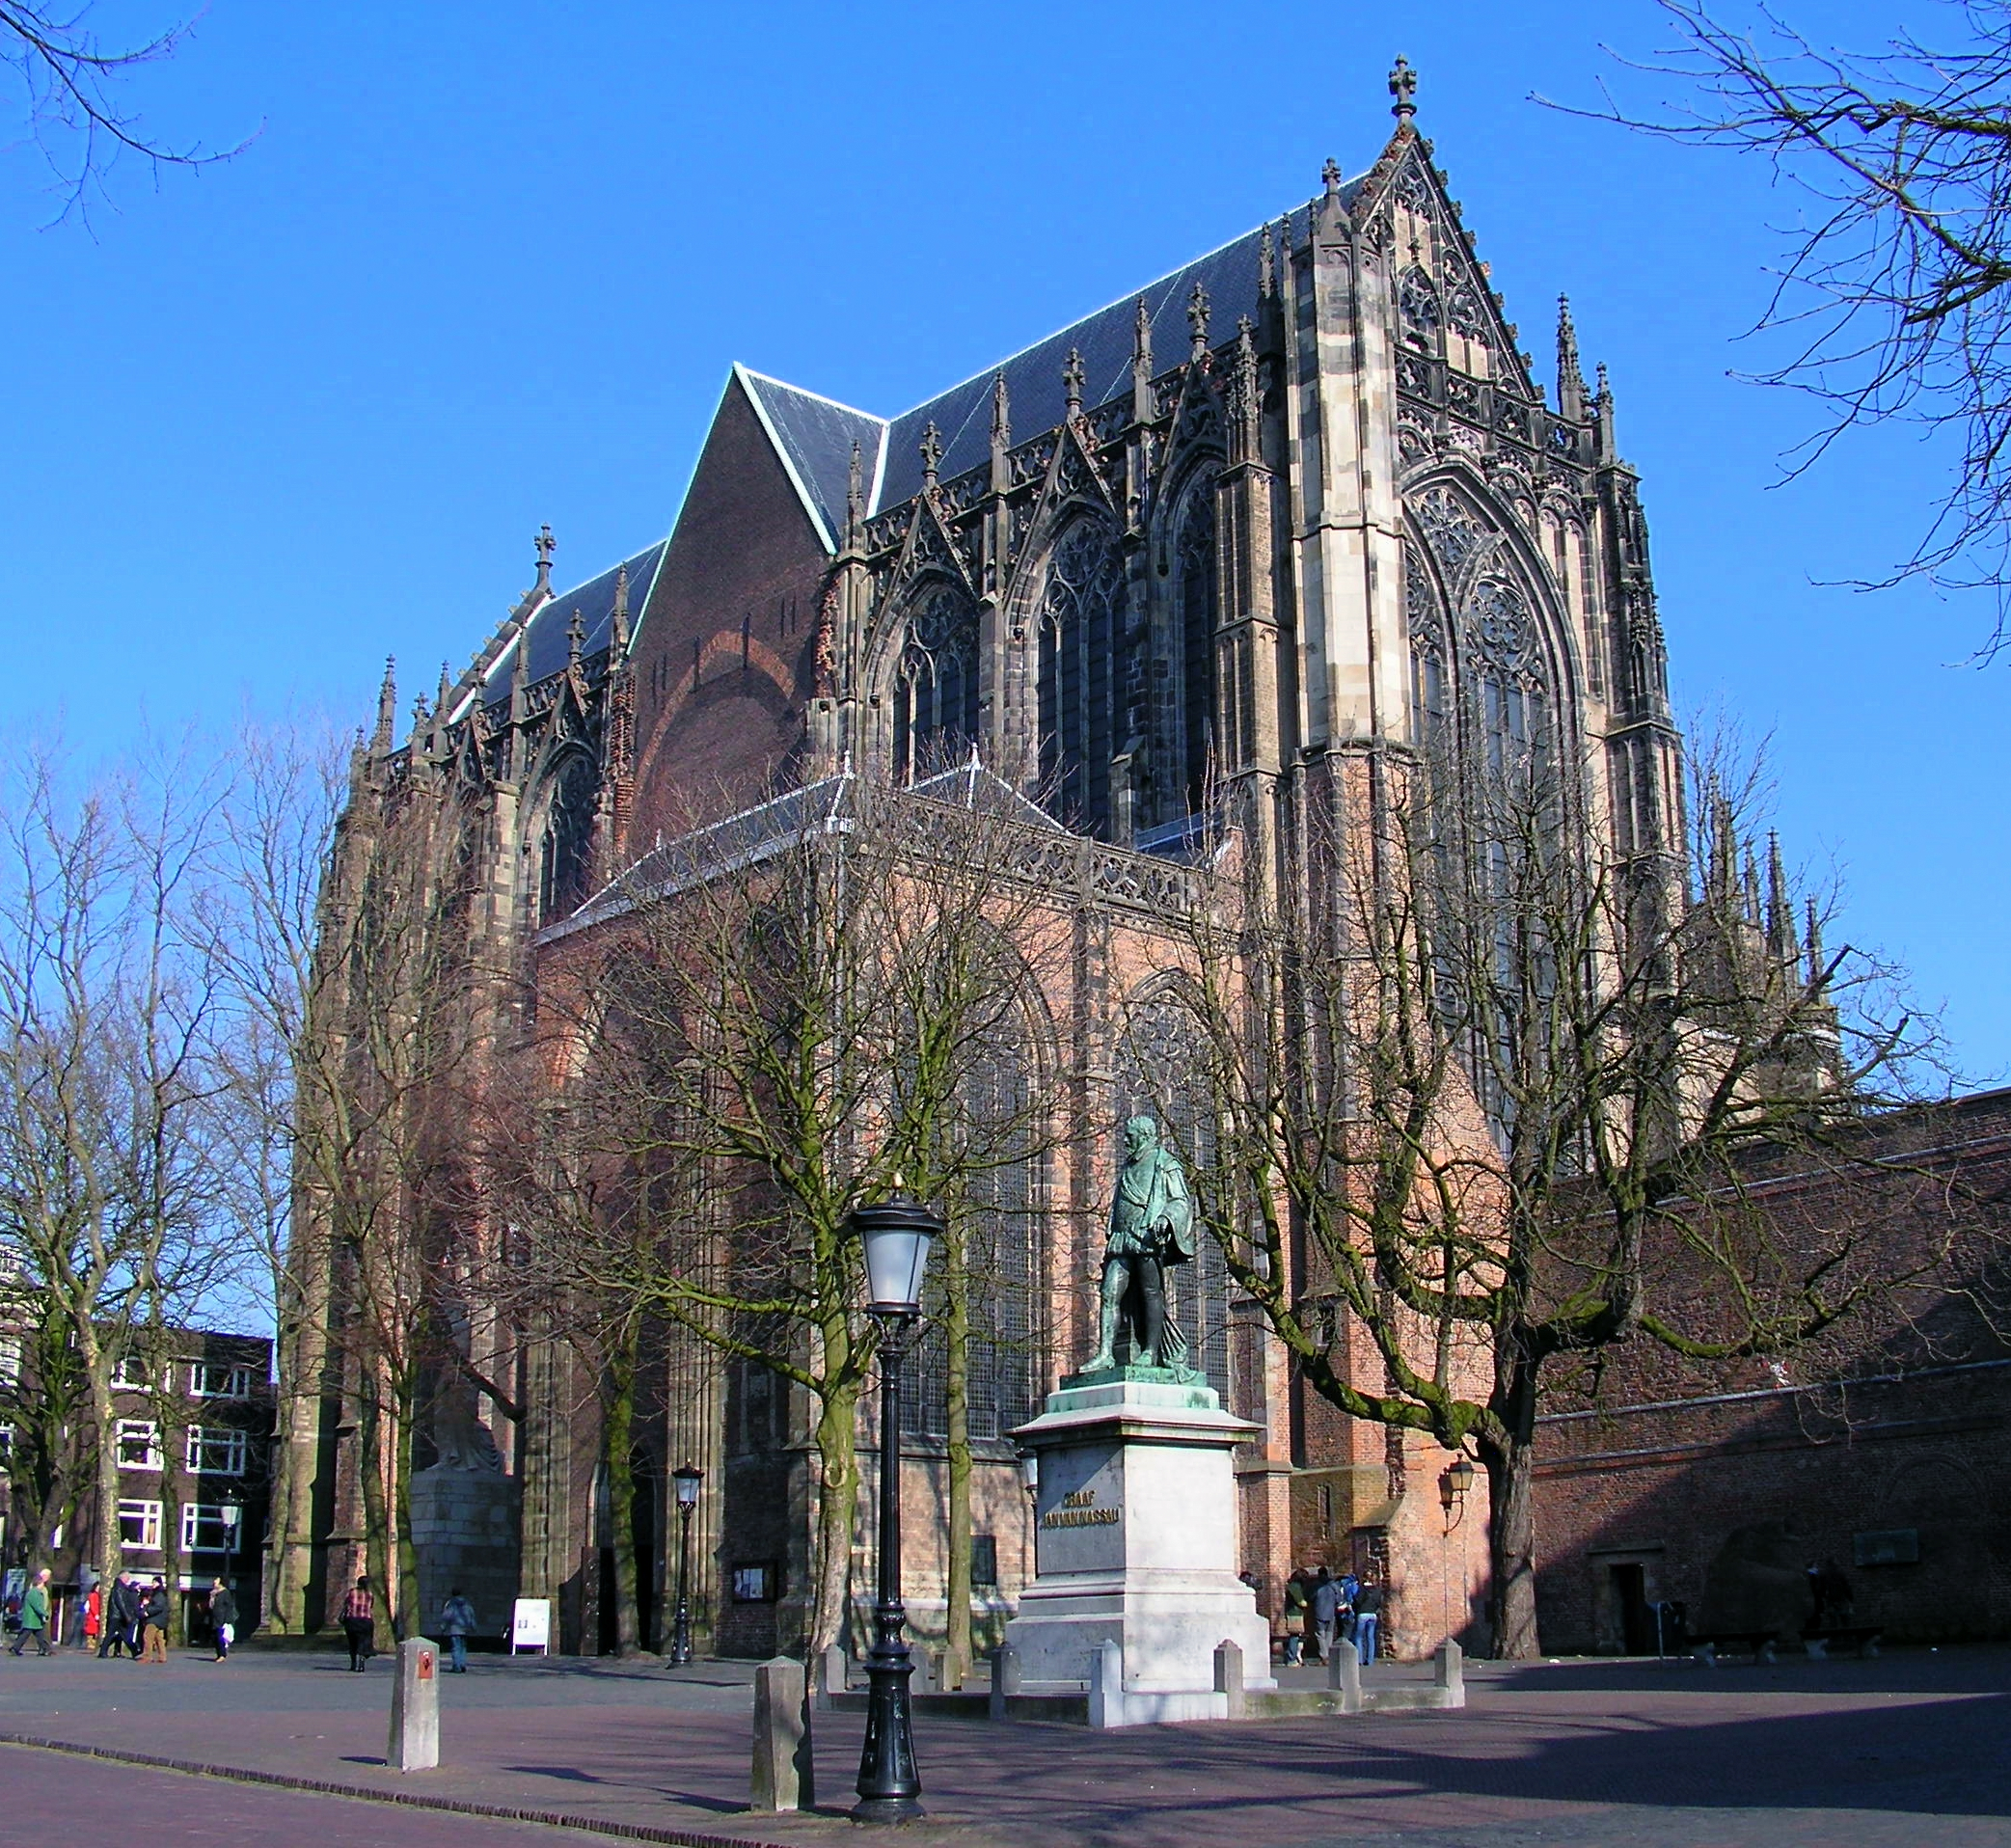 https://upload.wikimedia.org/wikipedia/commons/3/33/Utrecht_Dom_church.JPG